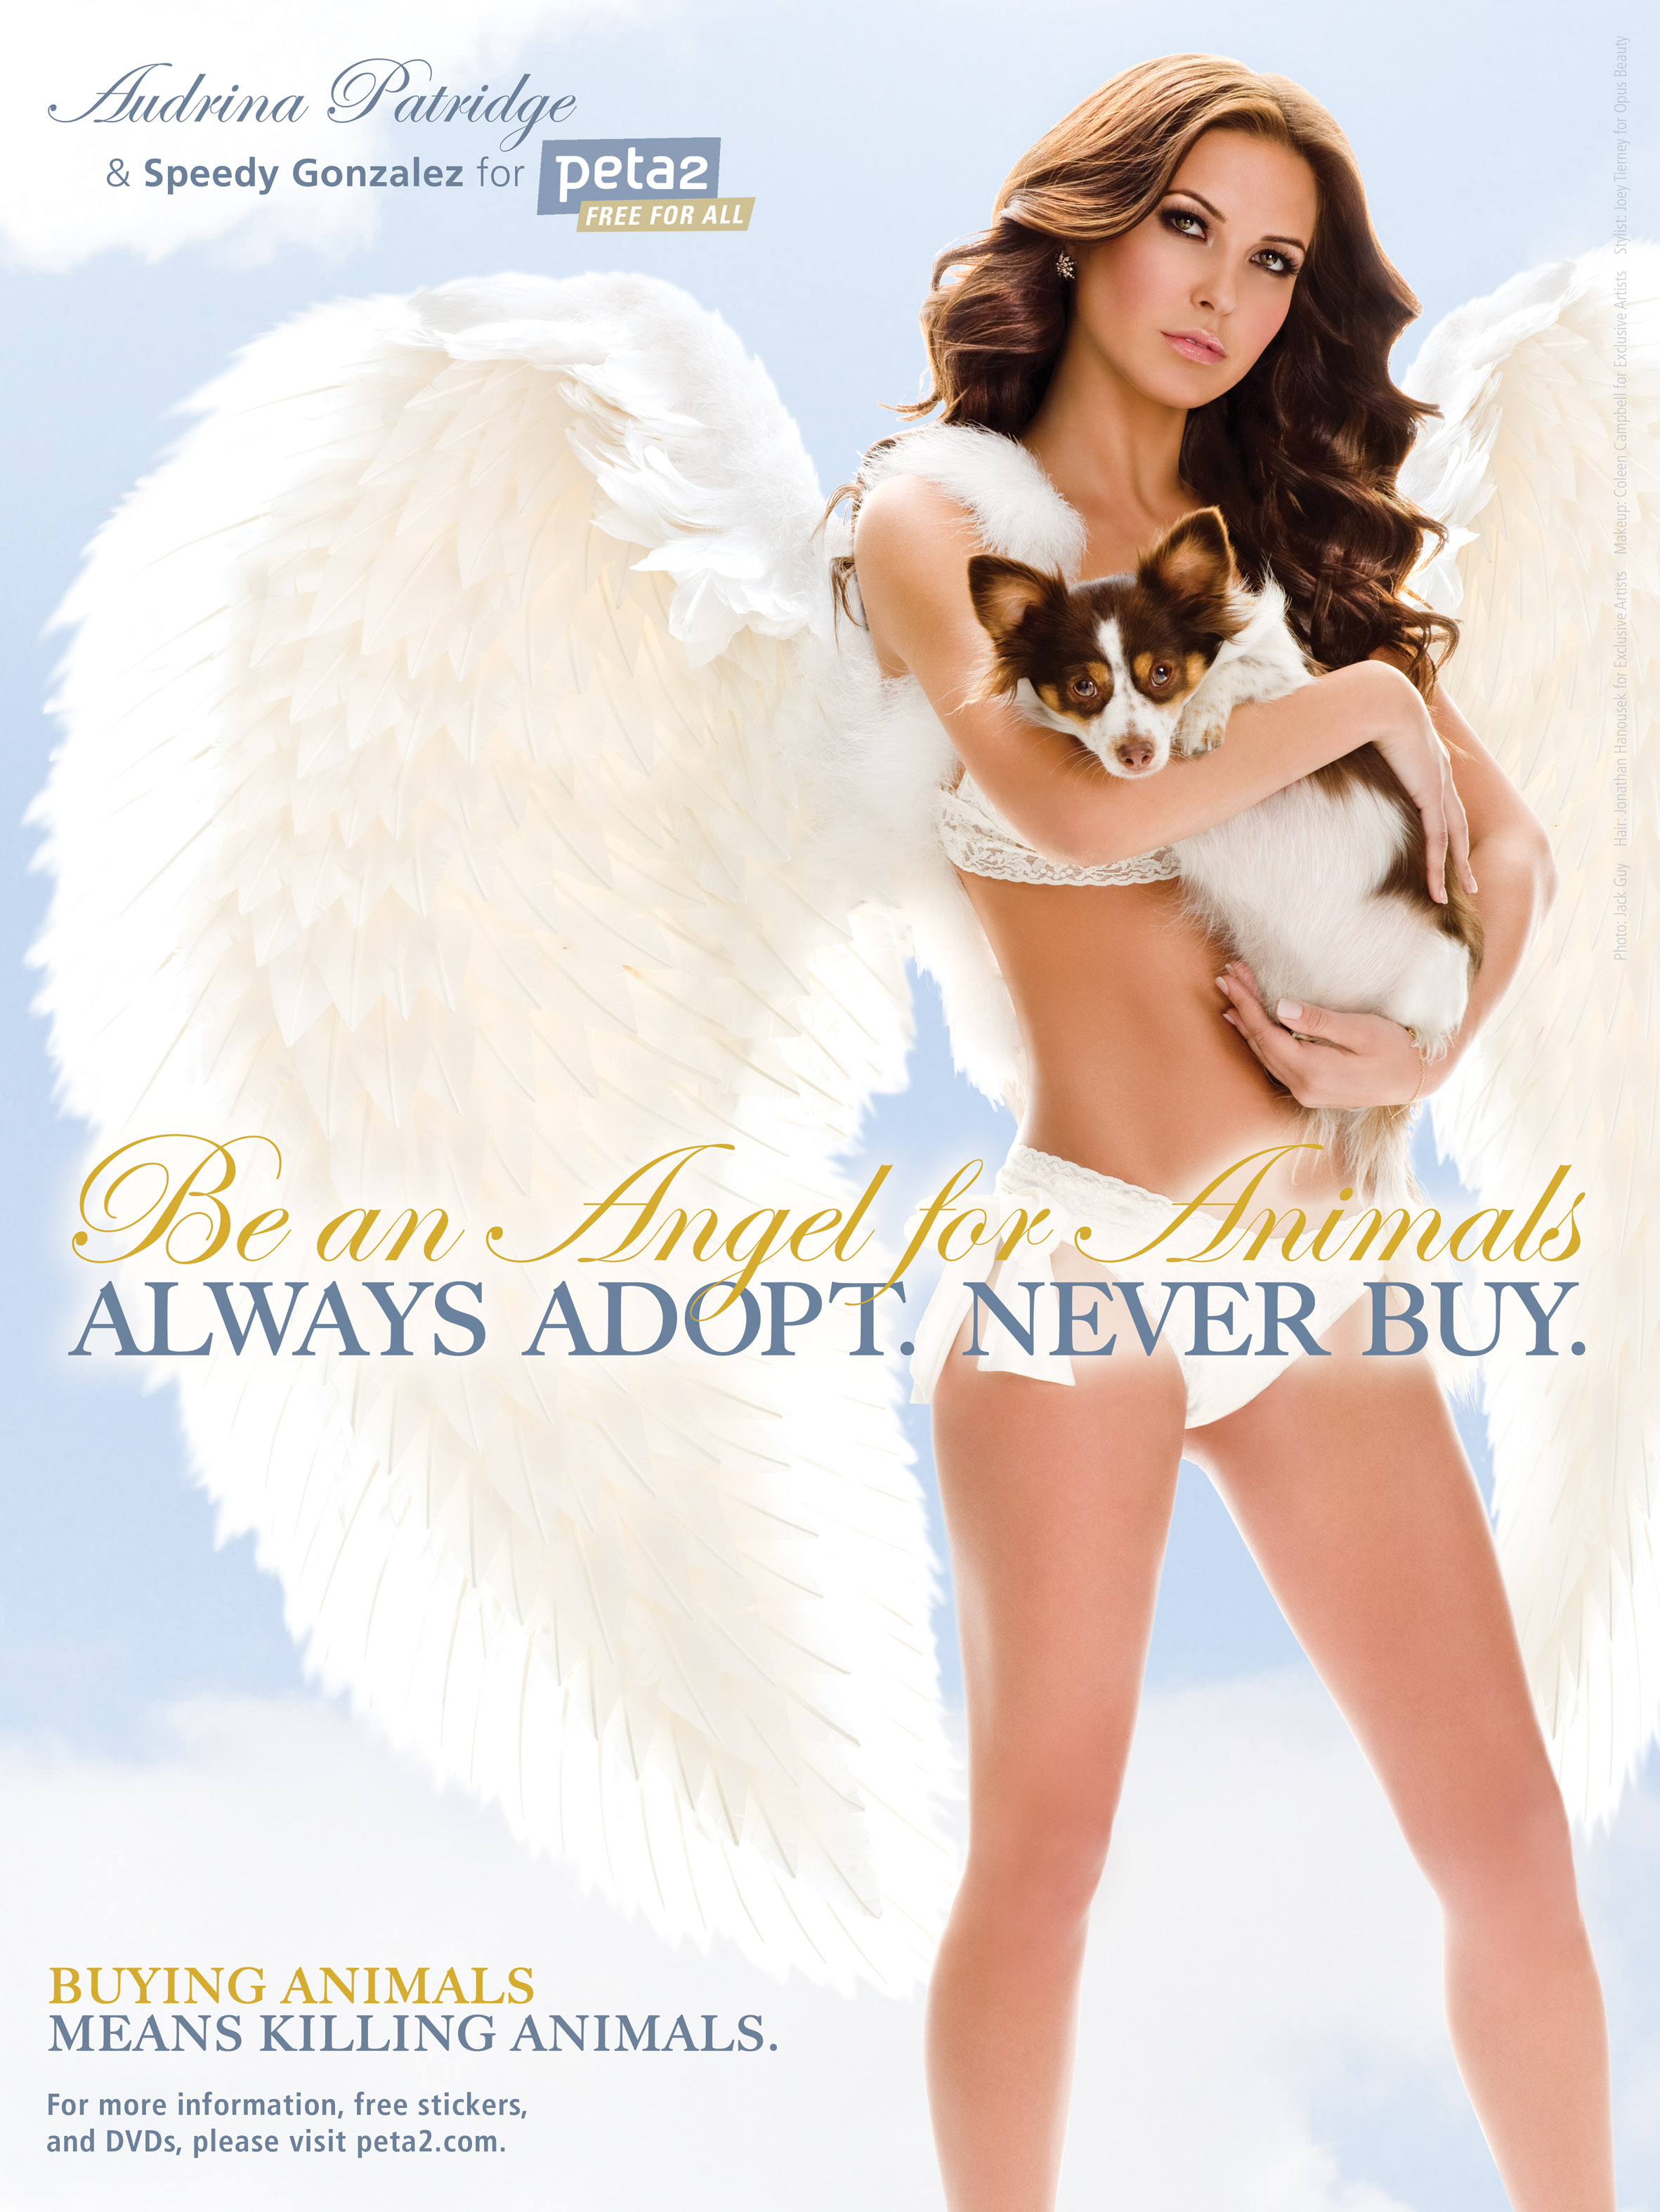 Audrina Patridge Be An Angel peta2 Ad